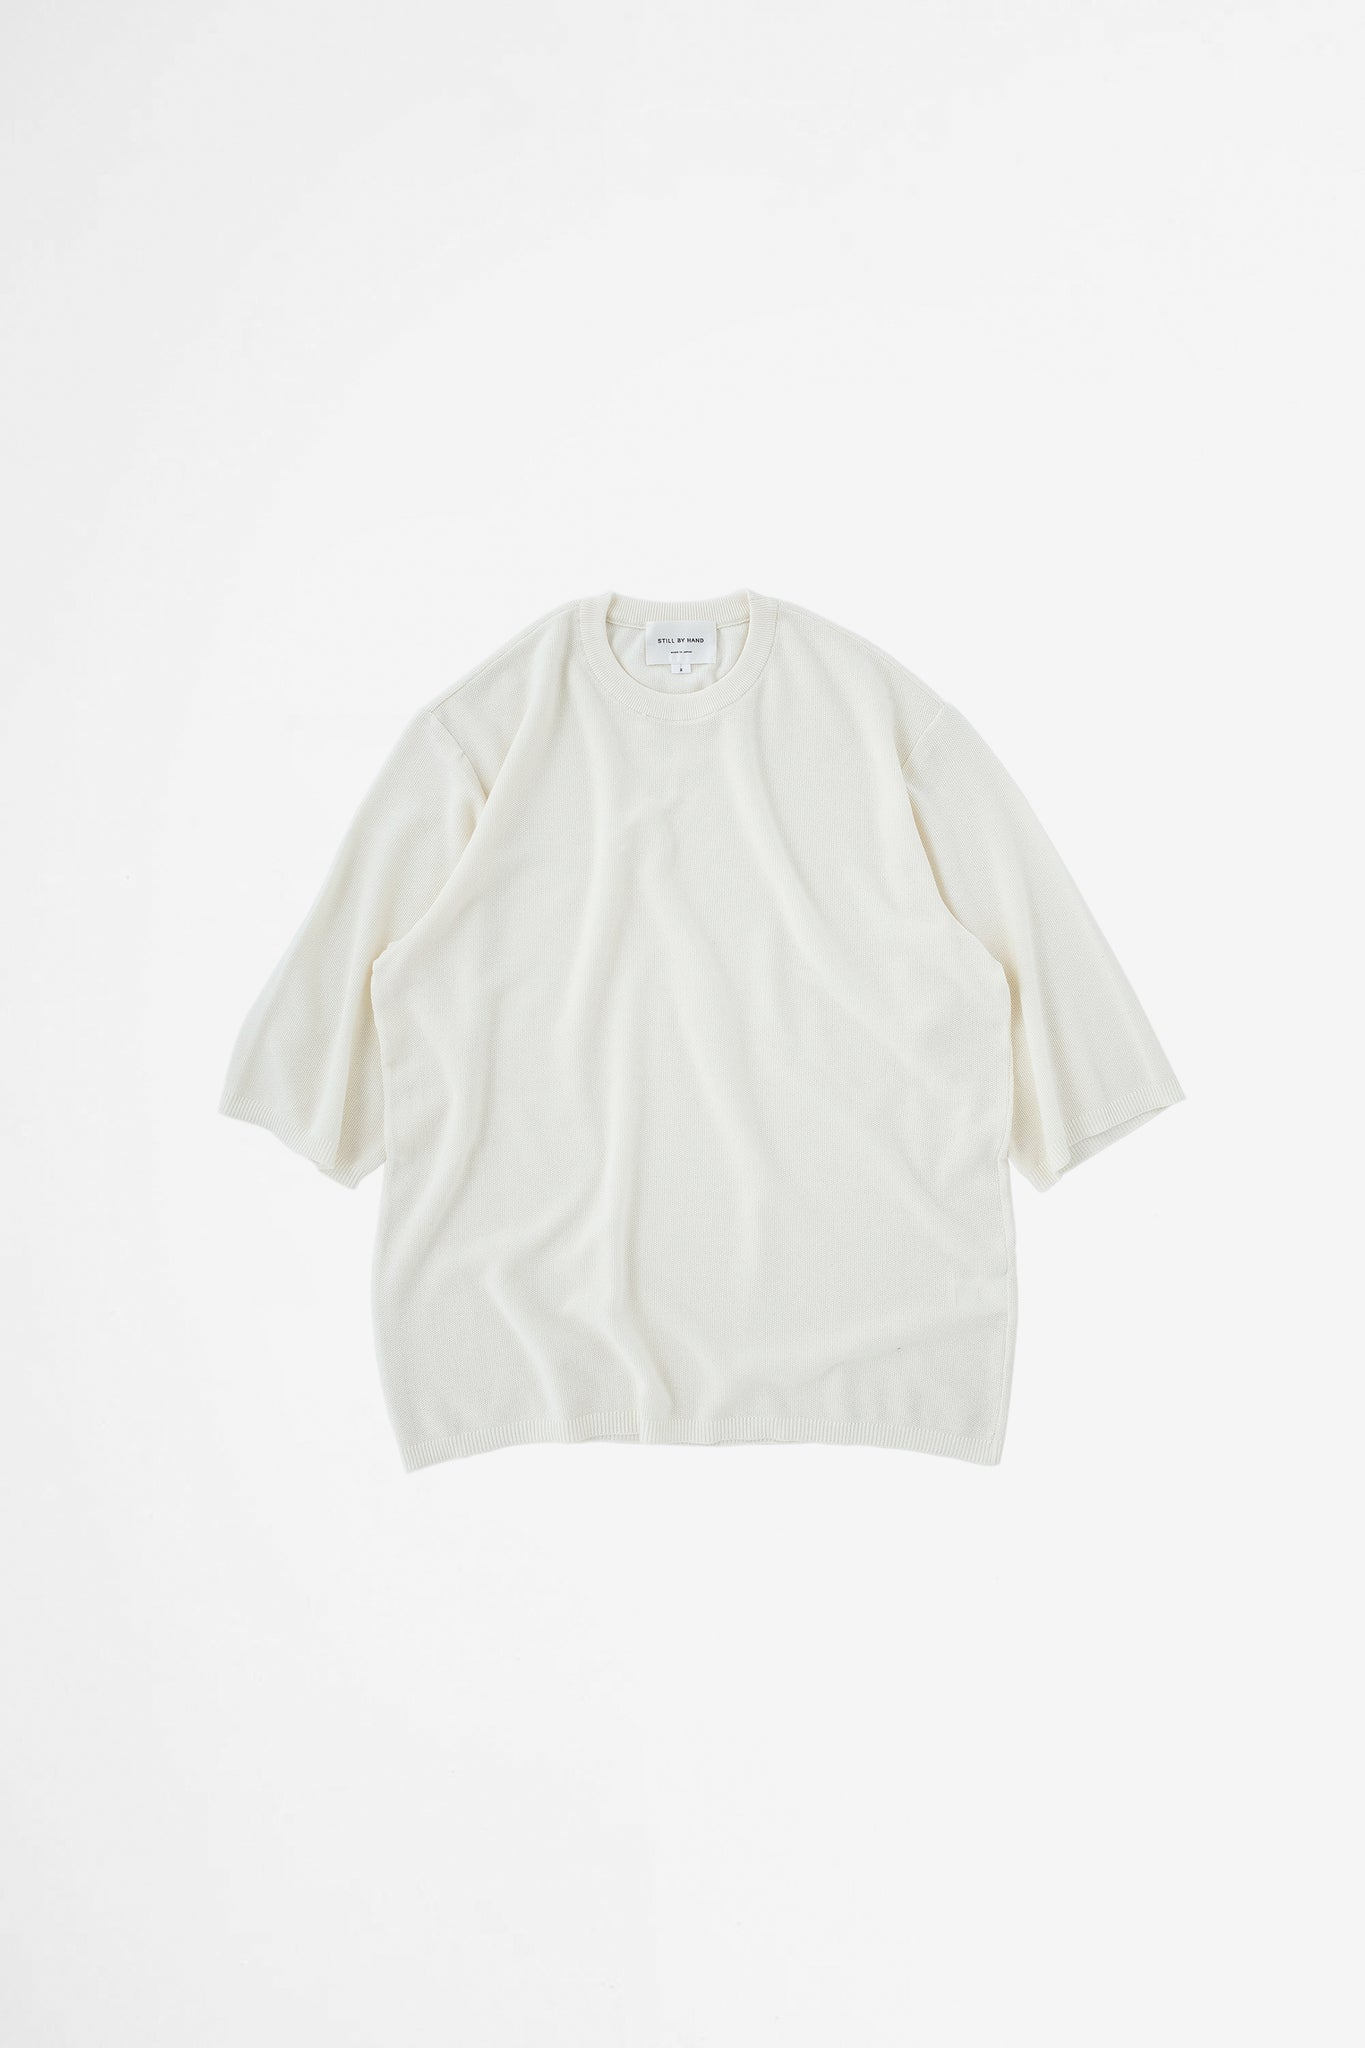 Half sleeve knit t-shirt off white